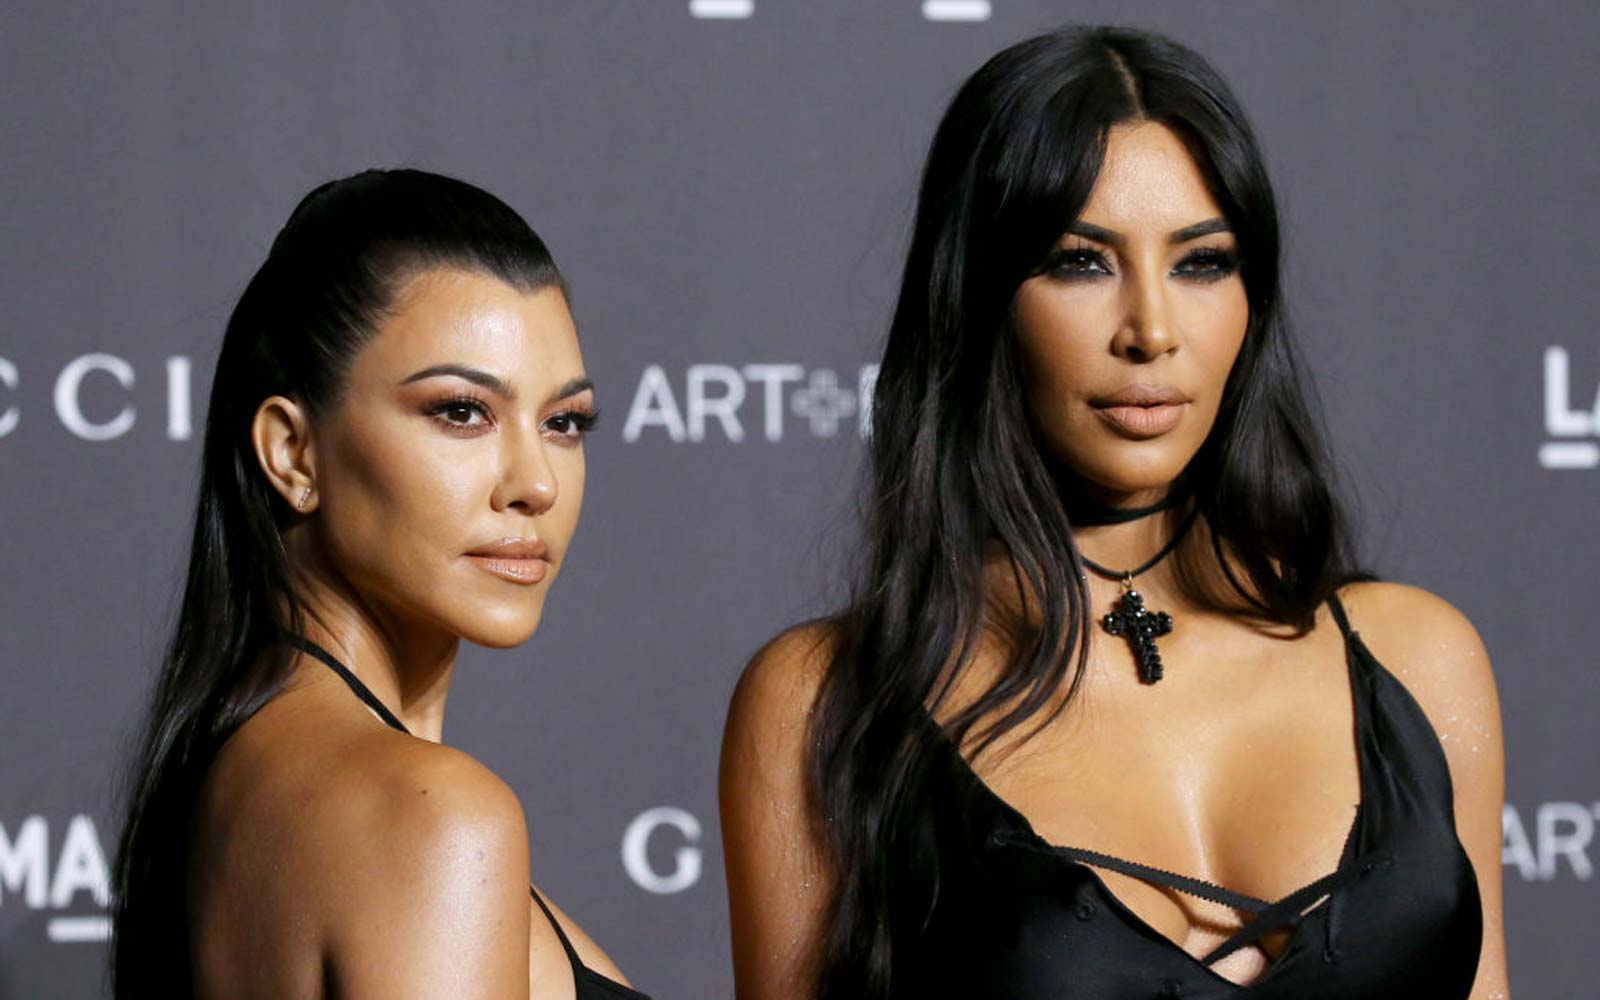 Kourtney Kardashian and Kim Kardashian West attend the 2018 LACMA Art + Film Gala held at LACMA